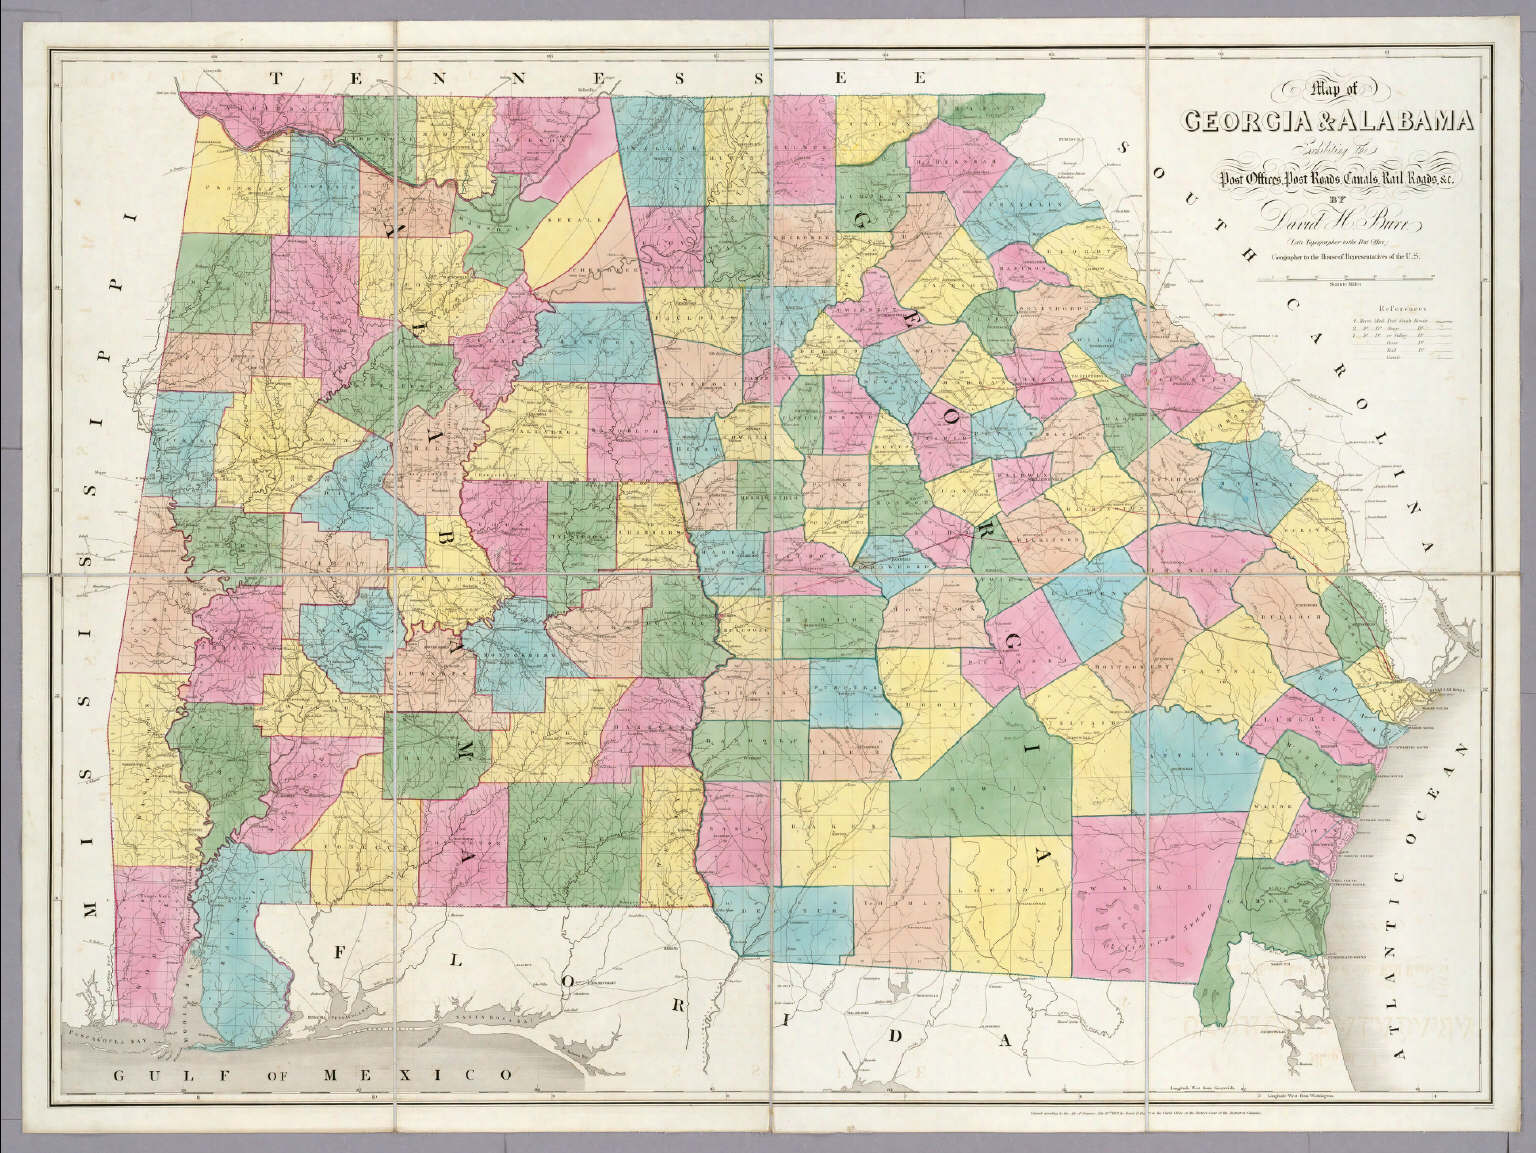 Map Of Georgia Alabama David Rumsey Historical Map Collection - Georgia map of